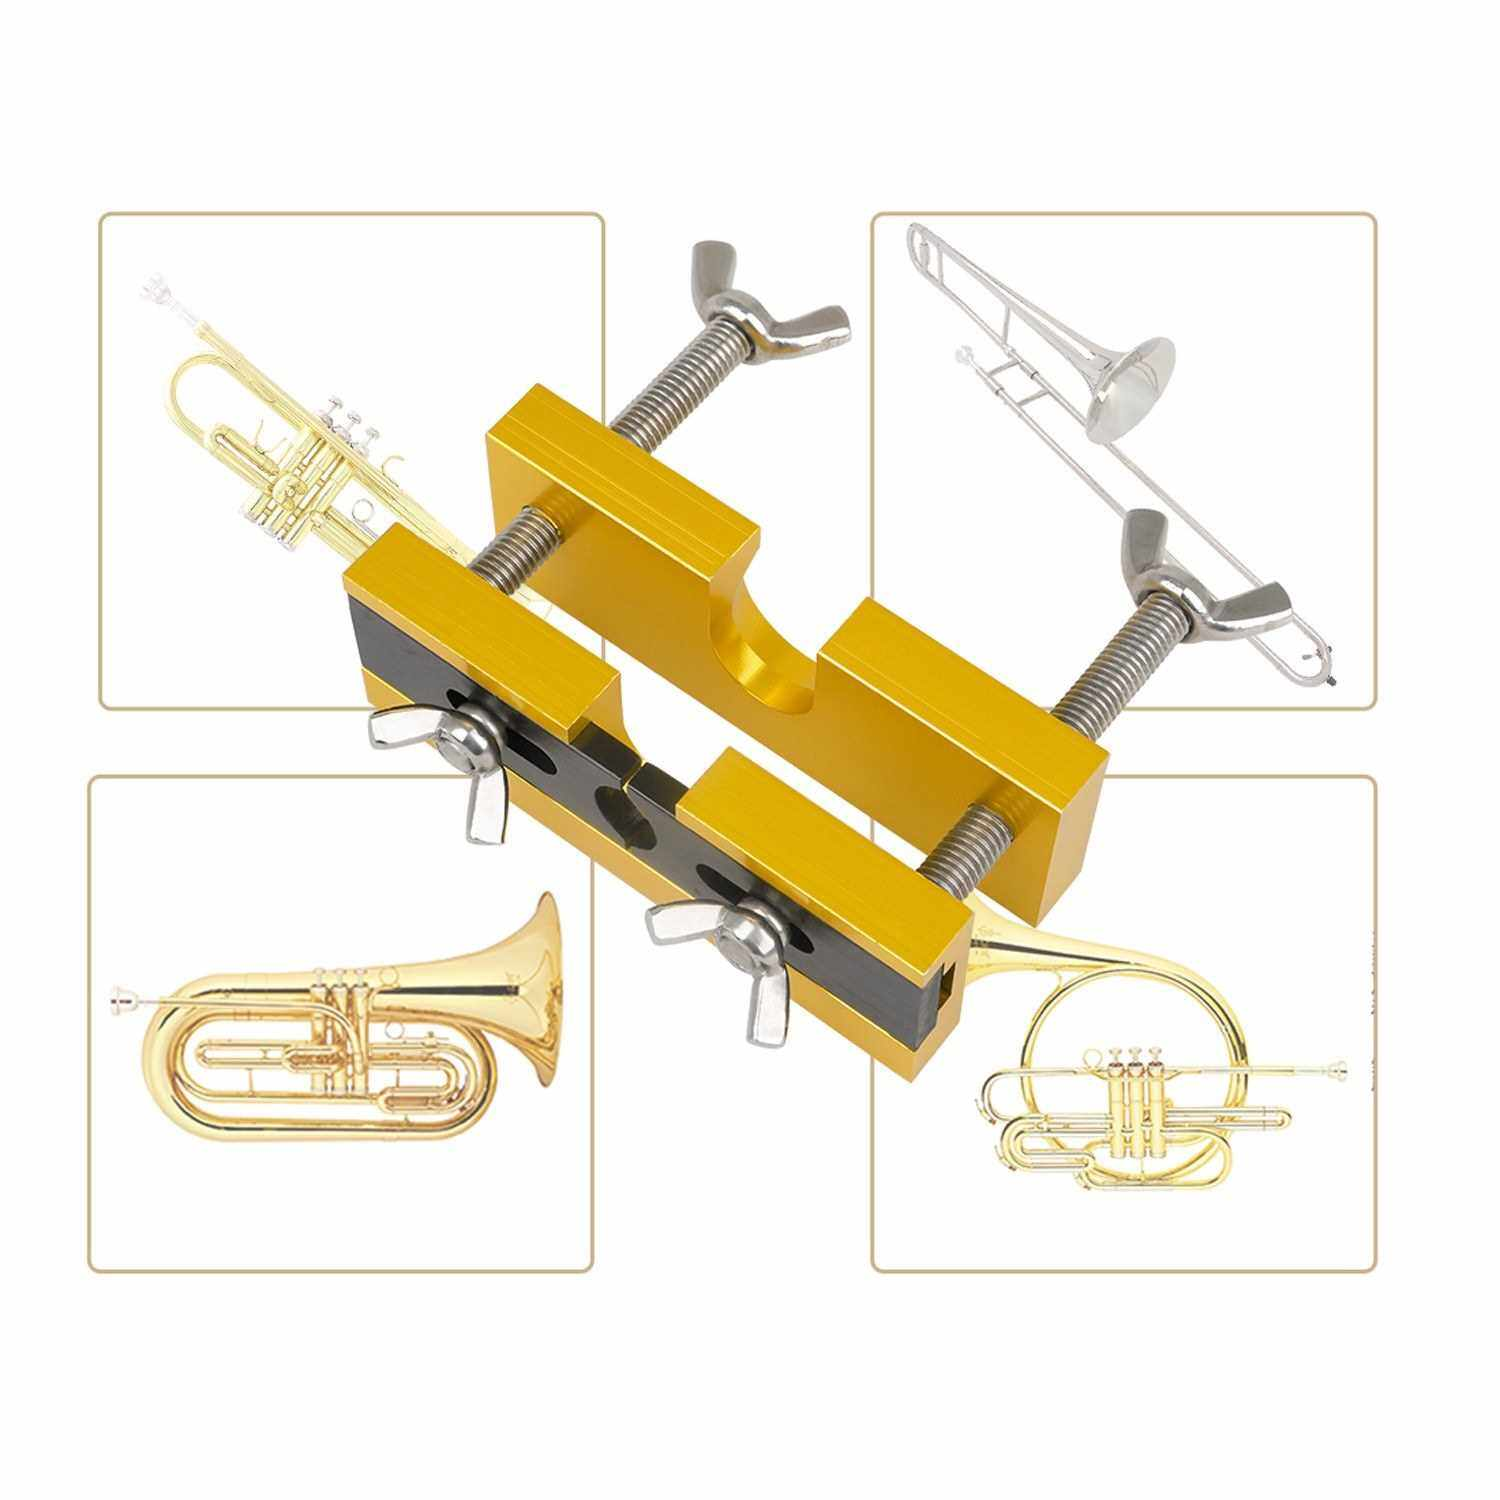 People's Choice Metal Trumpet Repairing Tool Trumpet Nozzle Separator Trumpet Mouth Extractor Tools (Standard)